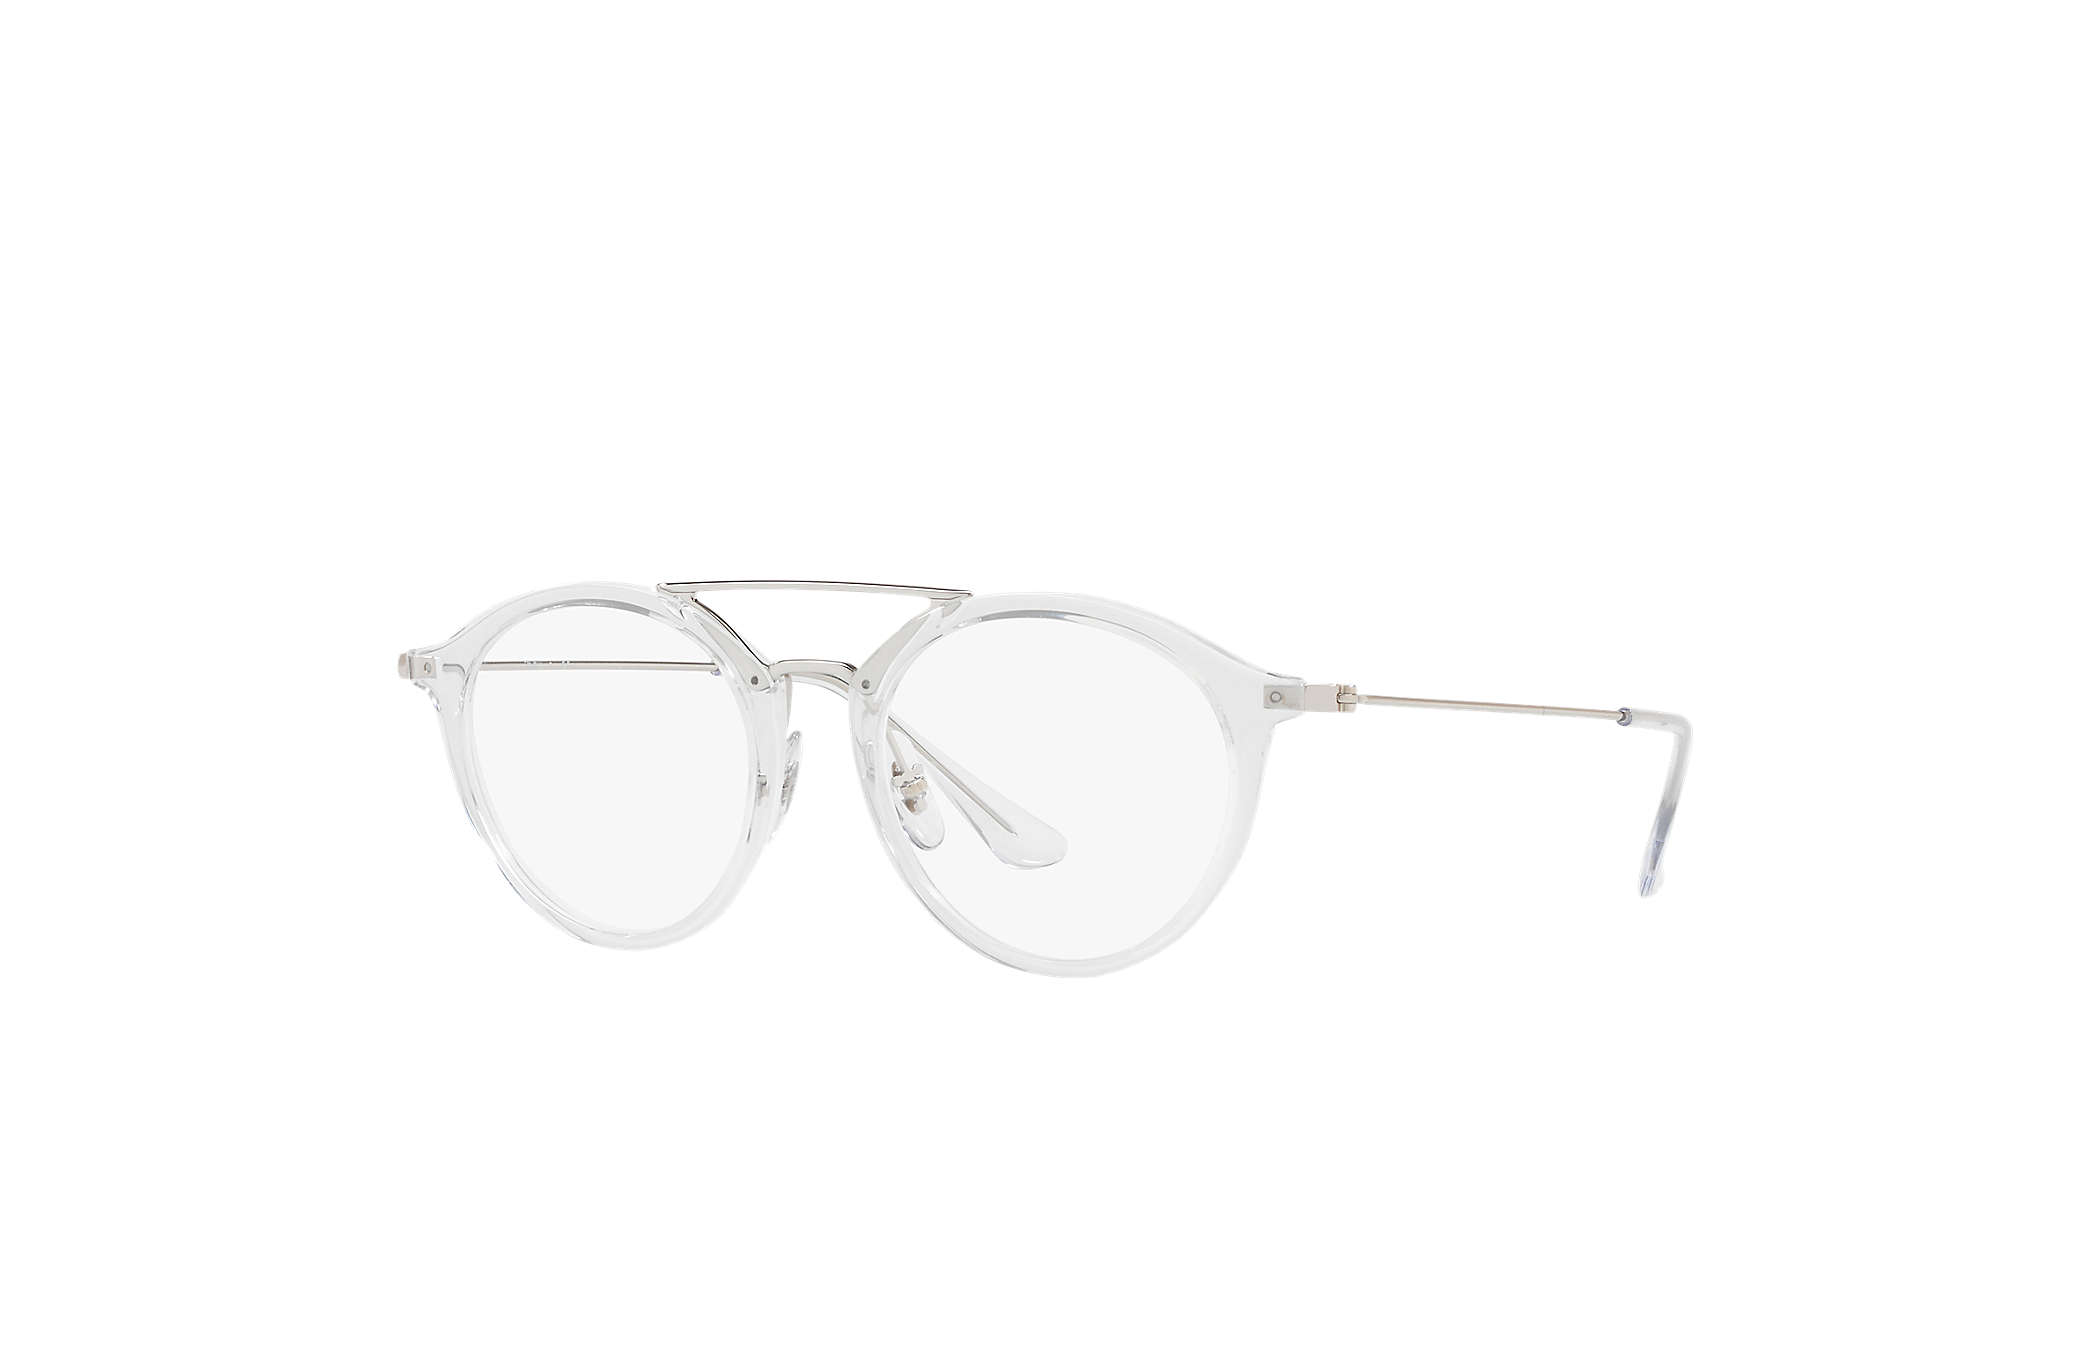 cd5790eba4a9f Lunettes de vue Ray-Ban RB7097 Transparent - Injected ...